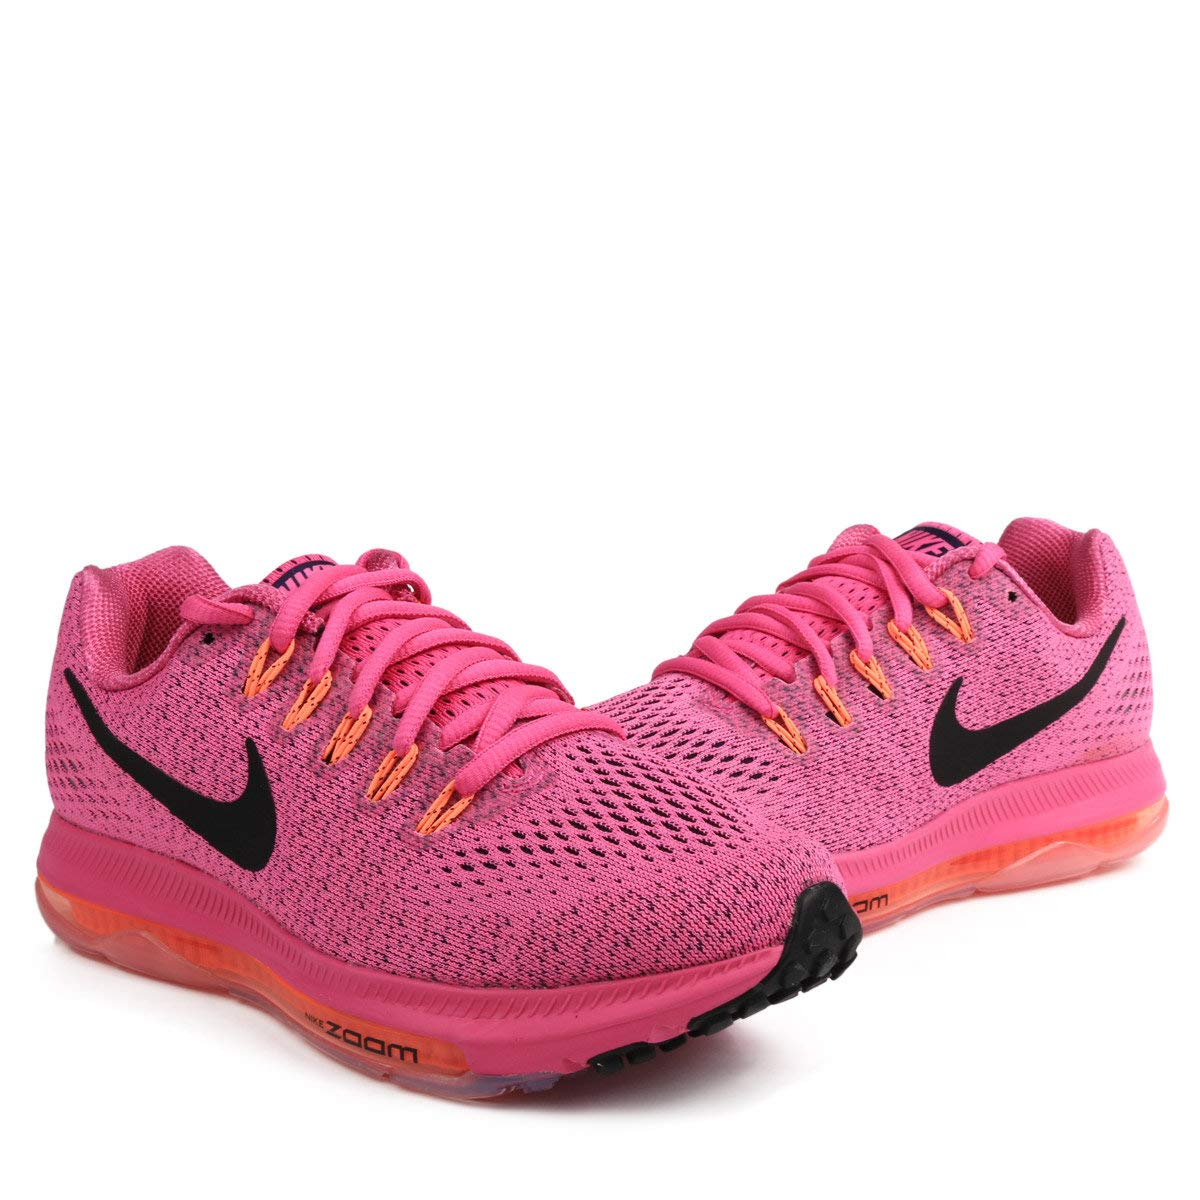 43f23e37884d0 Galleon - NIKE Women's Zoom All Out Low Running Shoes, 12 B(M) US, Fire Pink /Black - Bright Mango